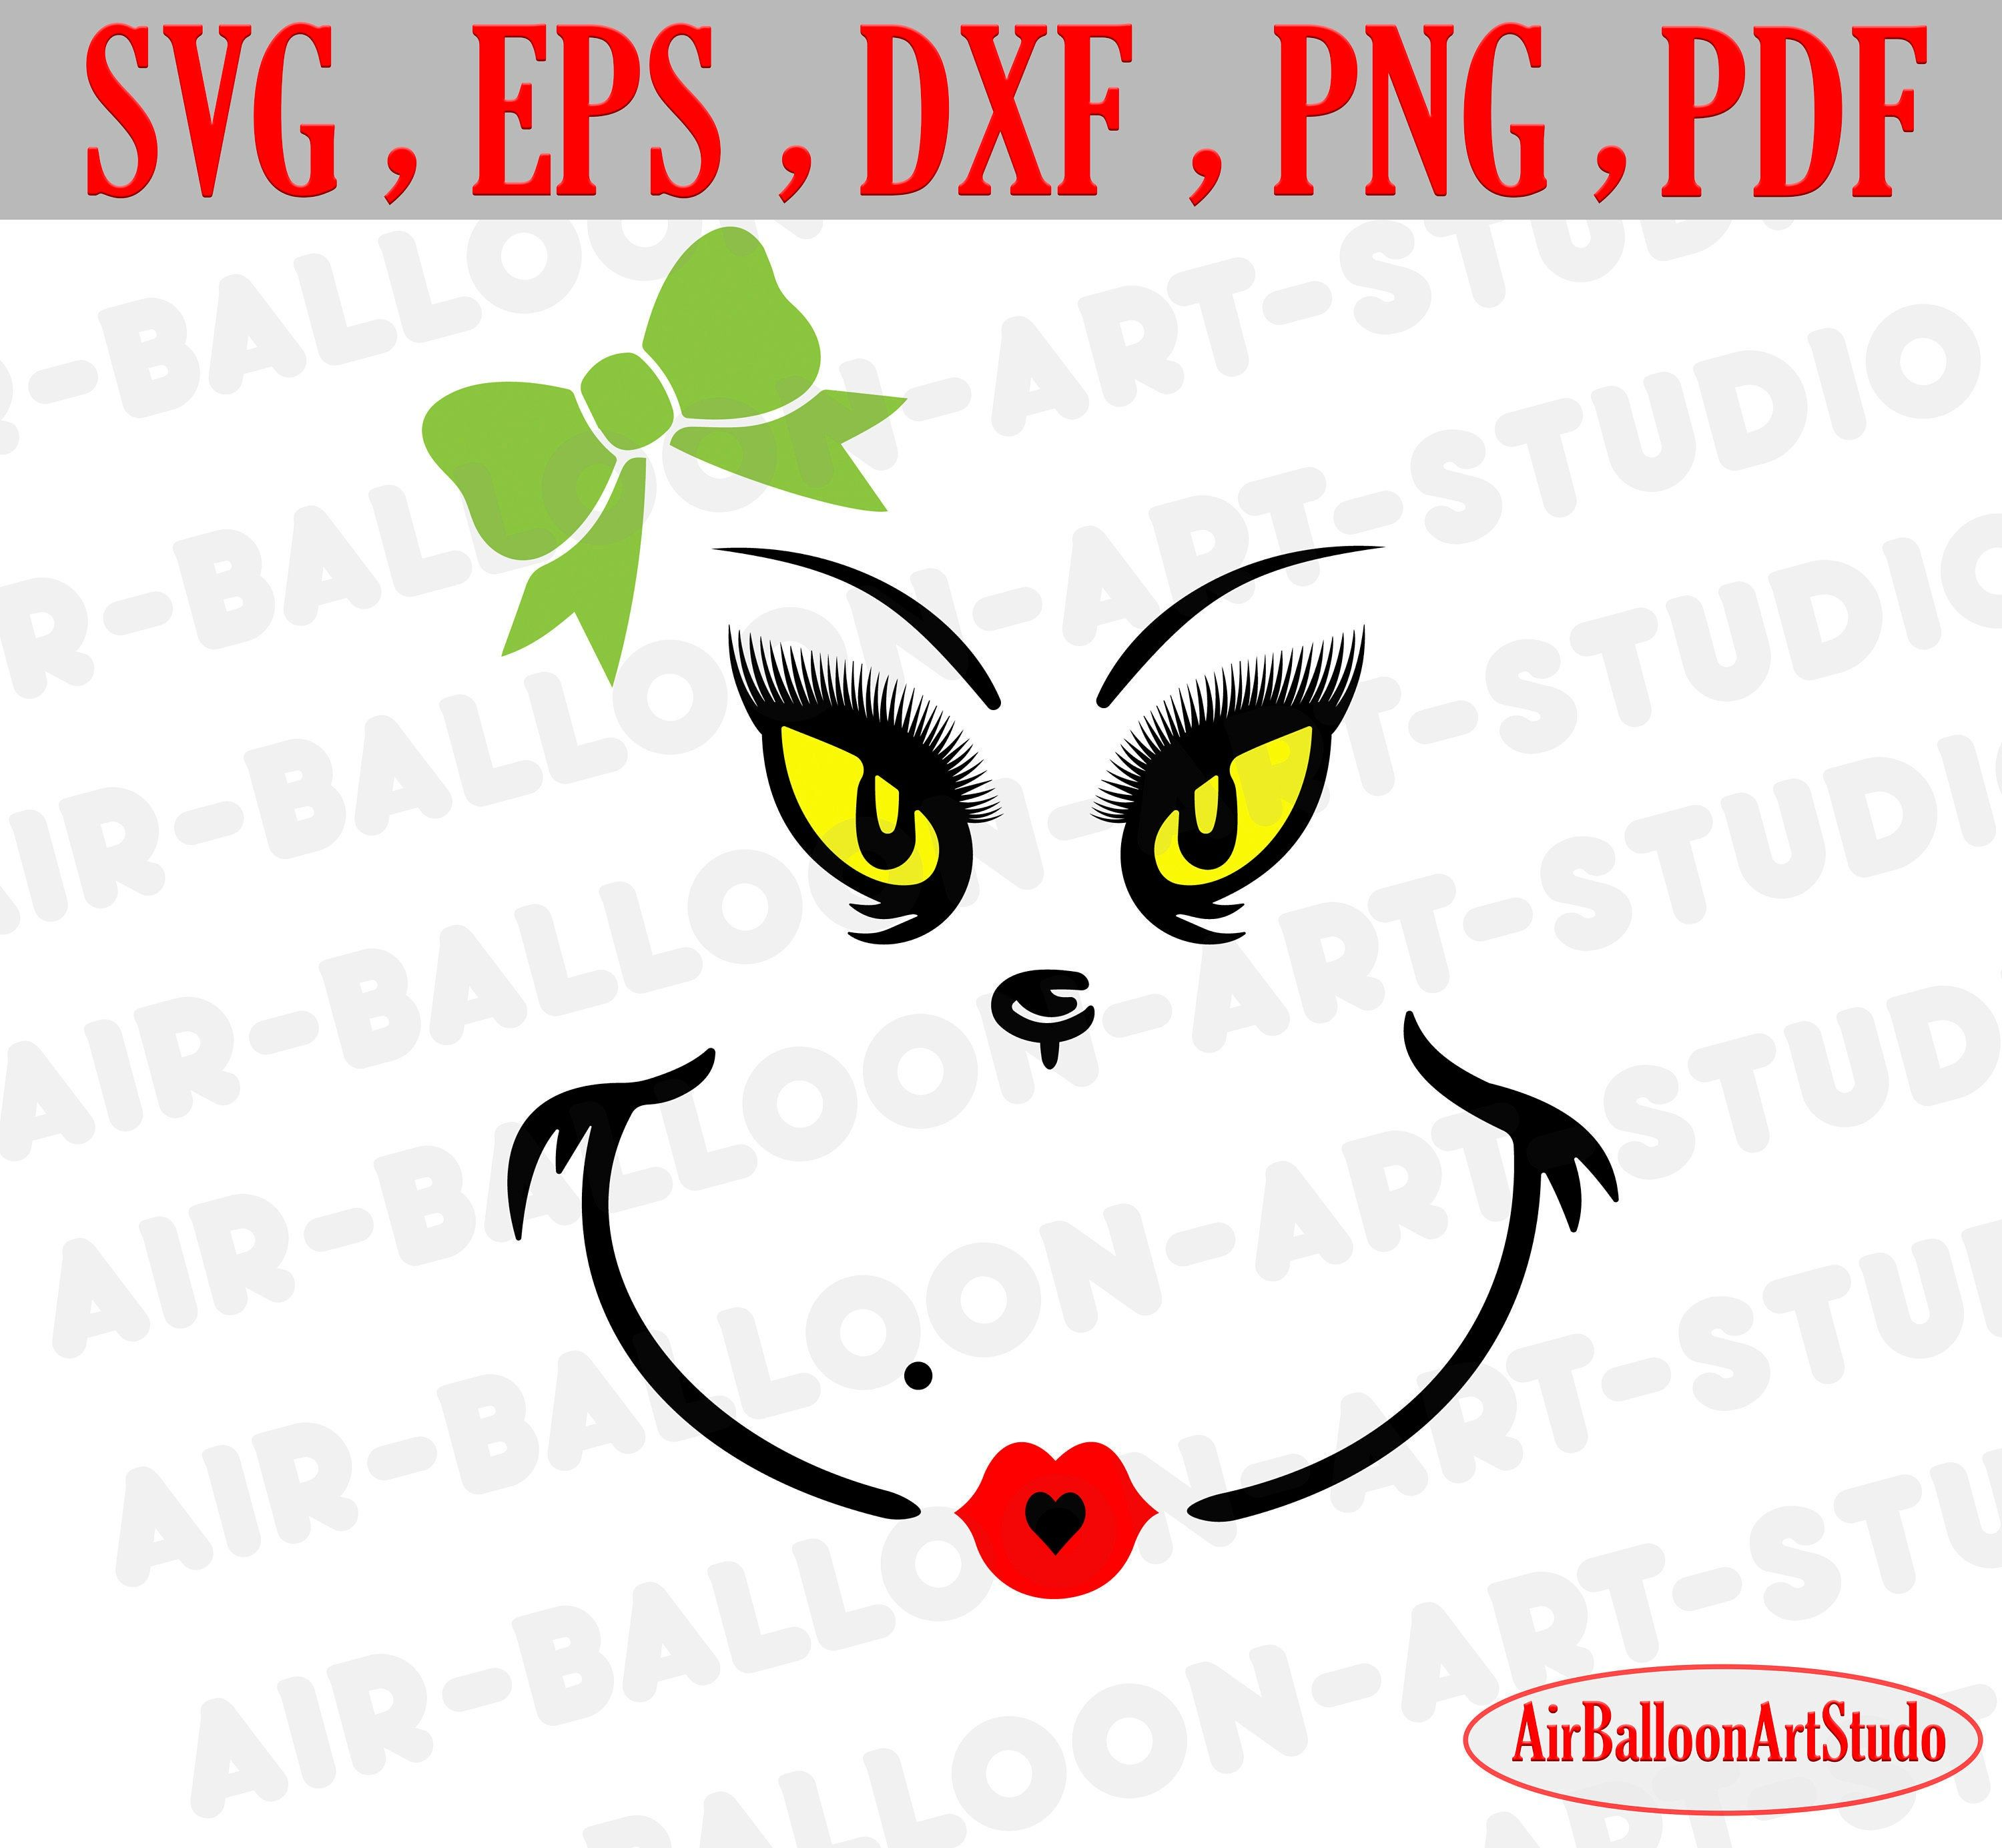 Dragon Svg Dragon Face Svg How To Train Your Dragon Svg Fury Etsy In 2020 Christmas Svg Grinch Face Svg Grinch Cricut